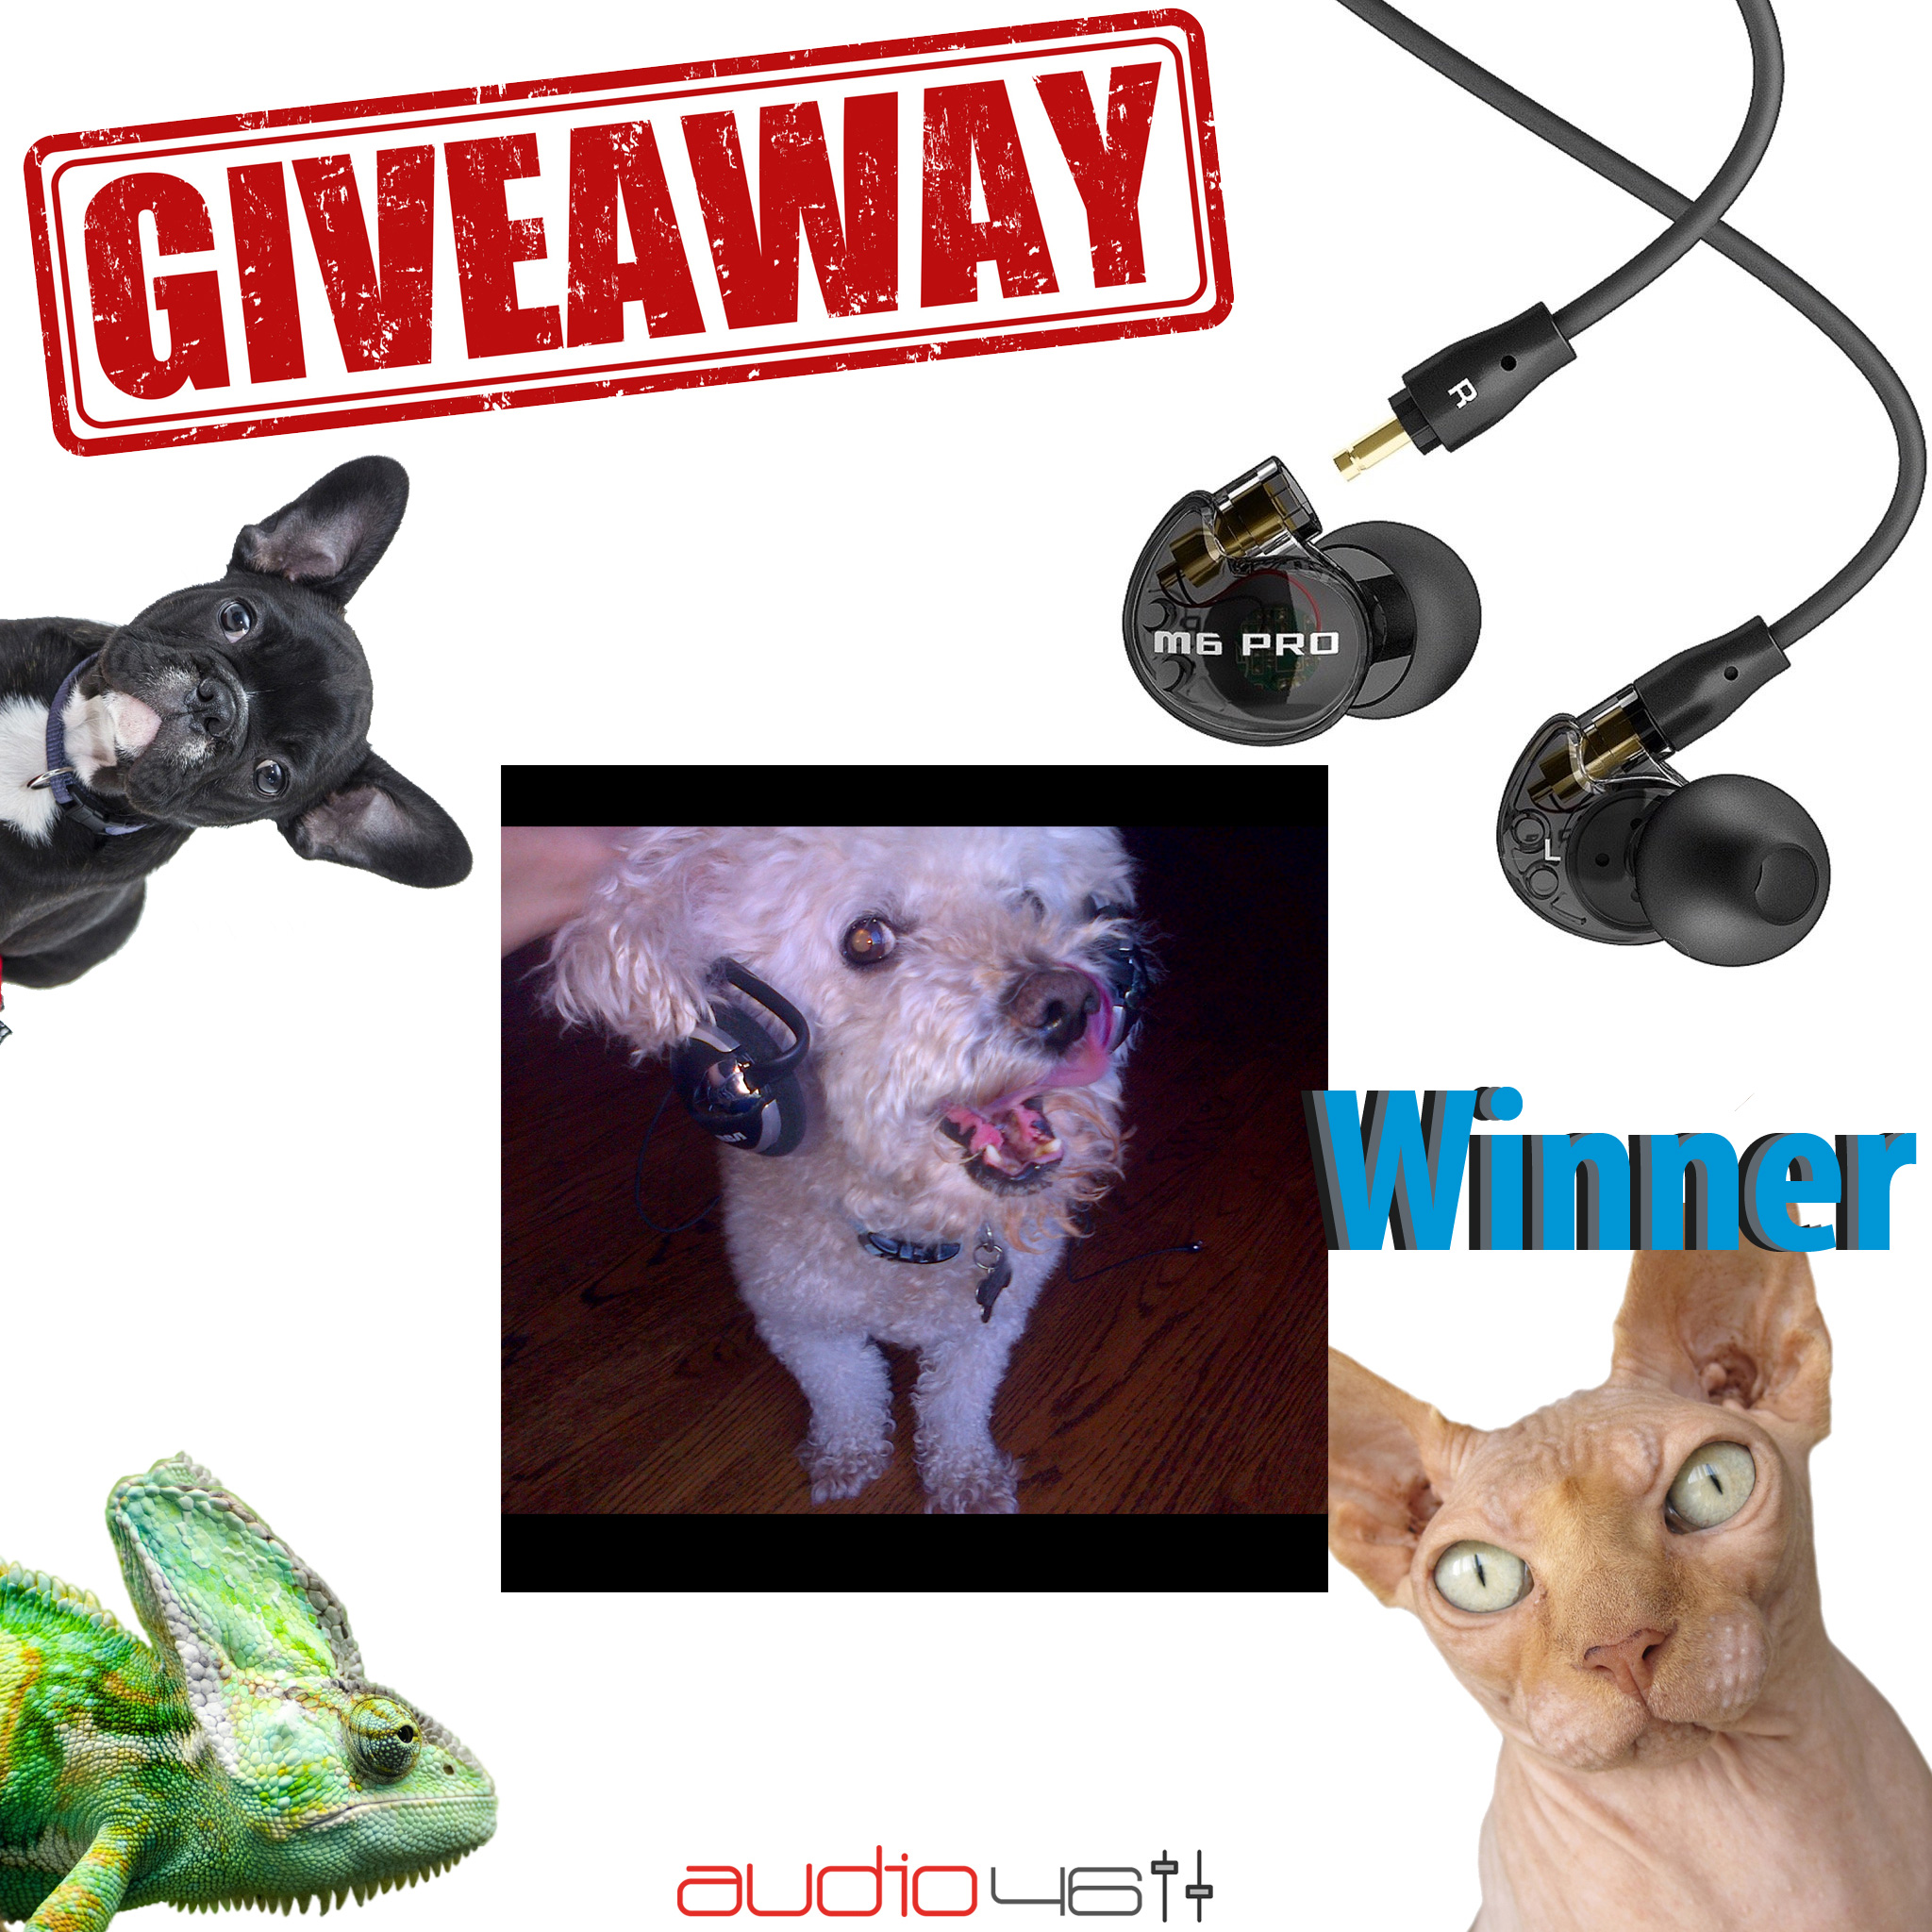 Pets With Headphones Photo Contest Winner